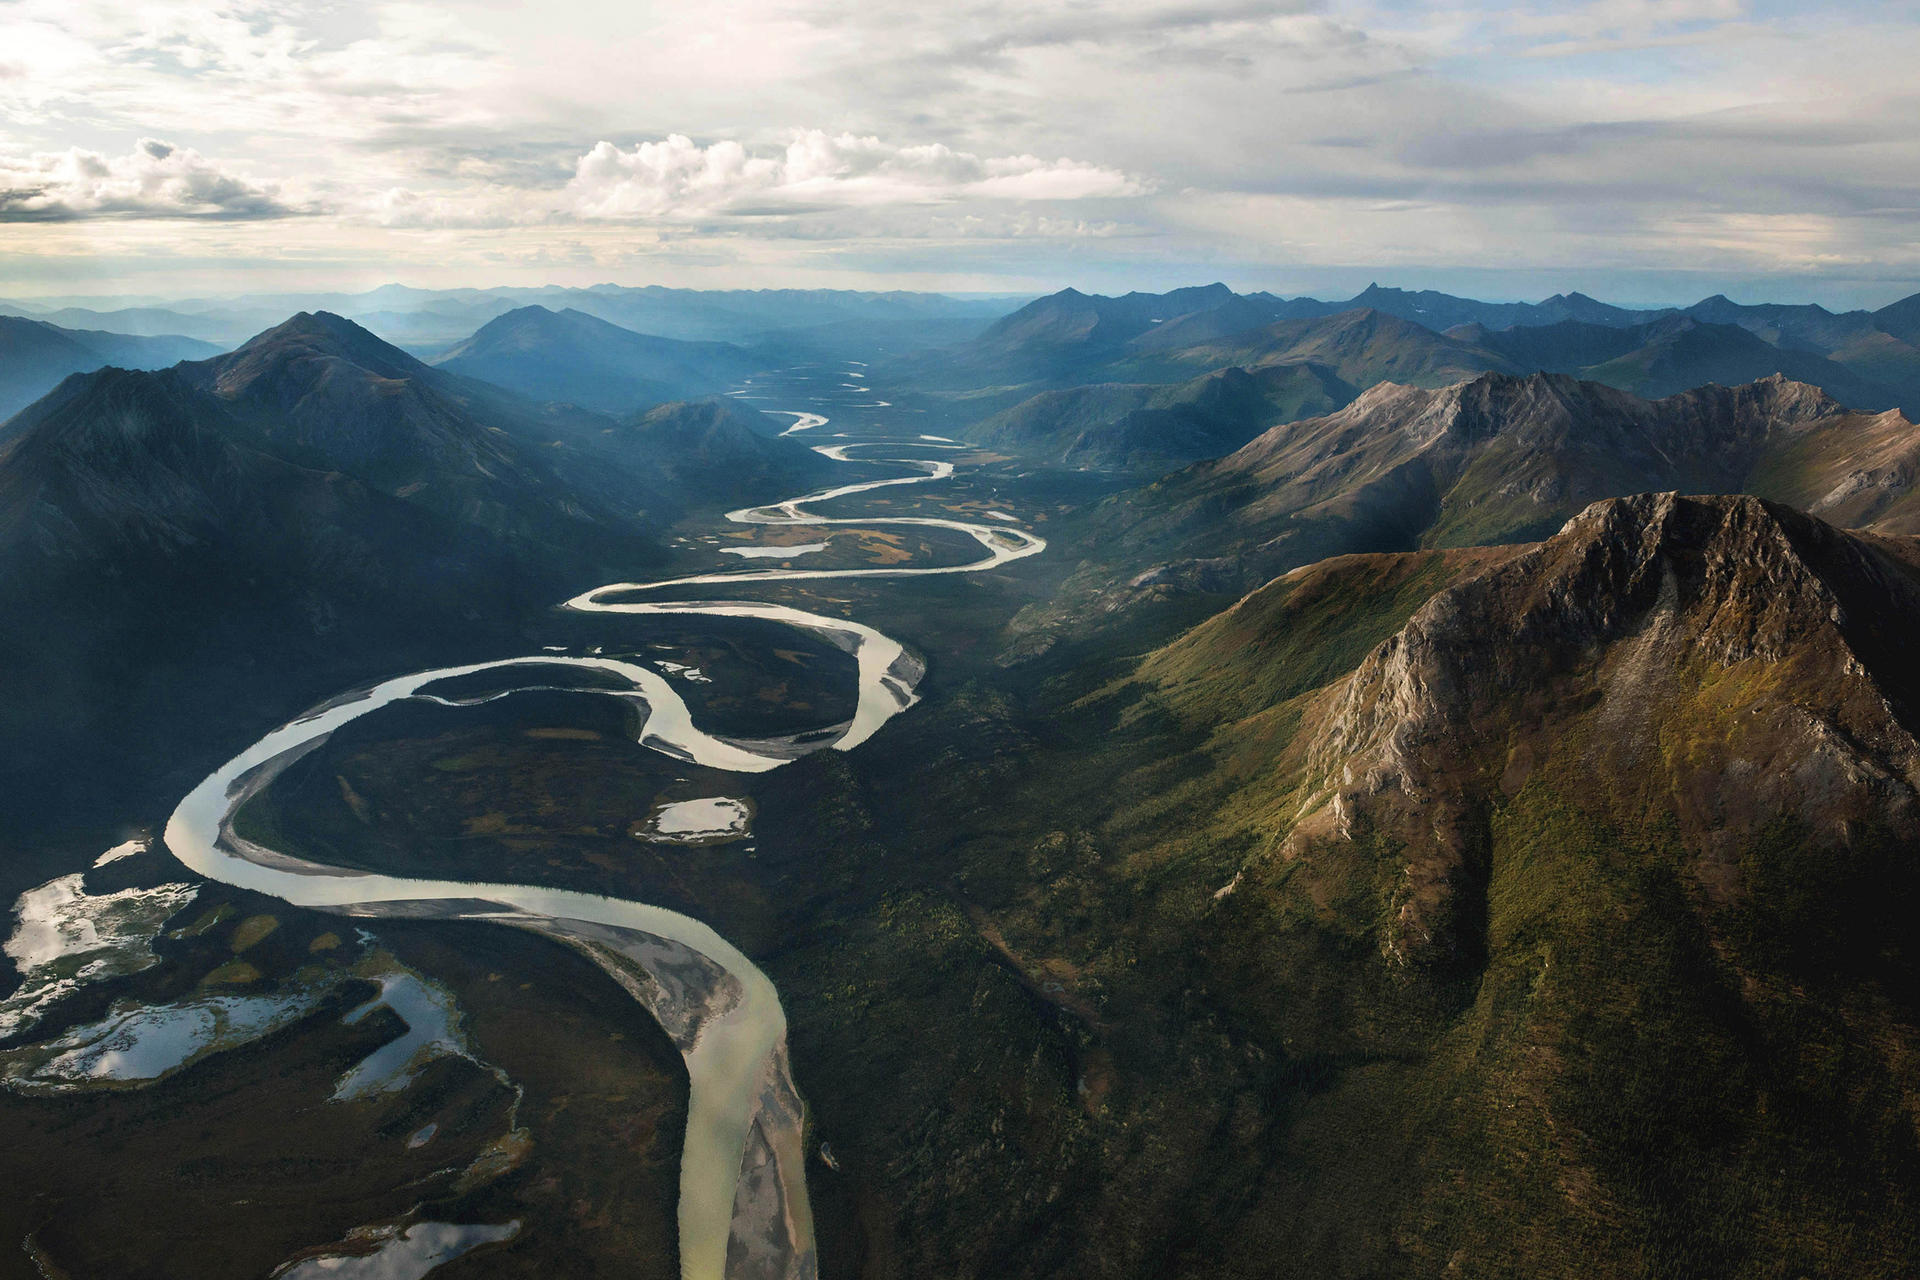 river winding through the mountains